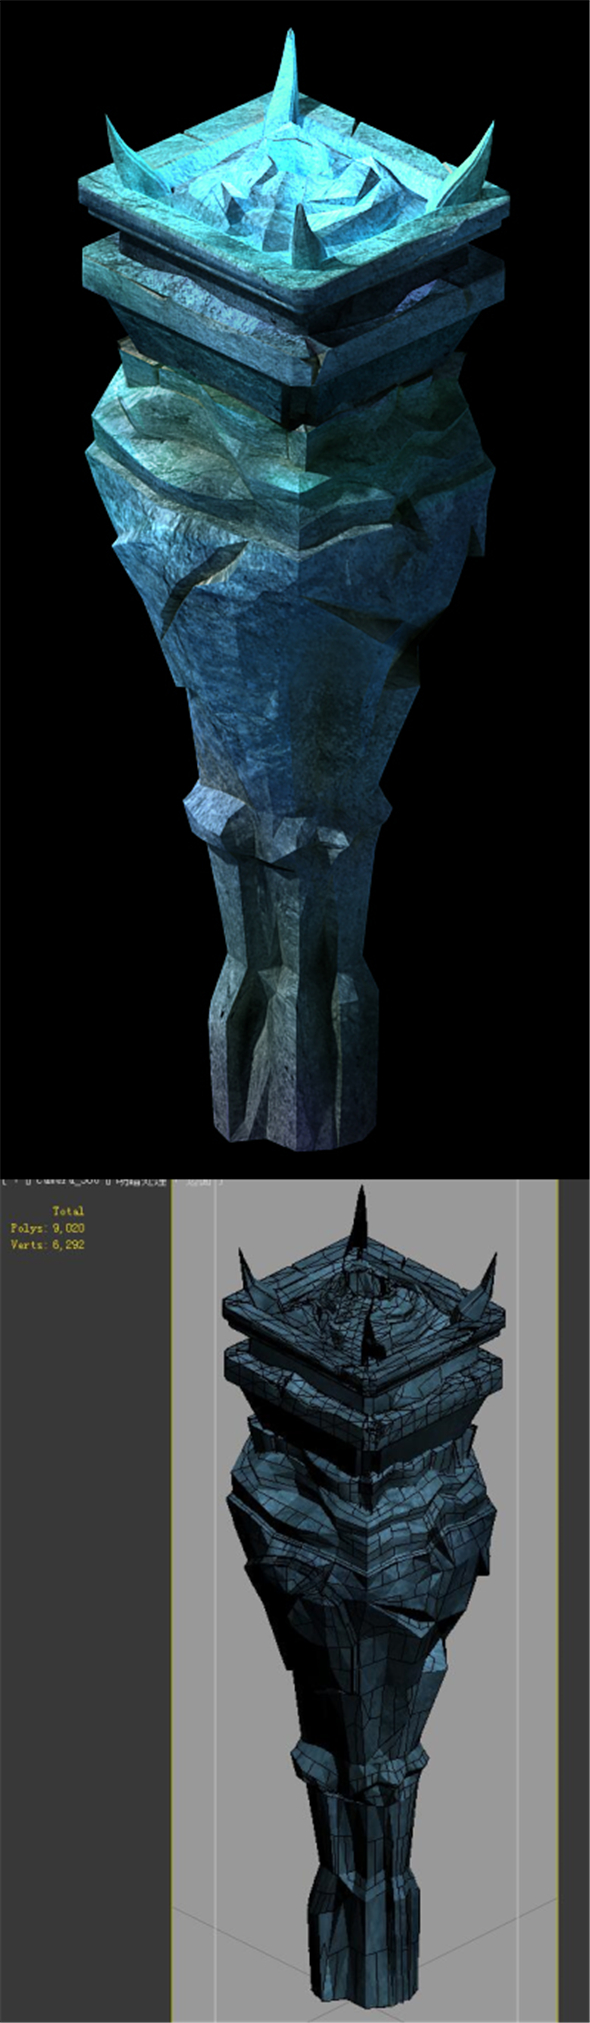 Game model - objects in the air castles - 3DOcean Item for Sale